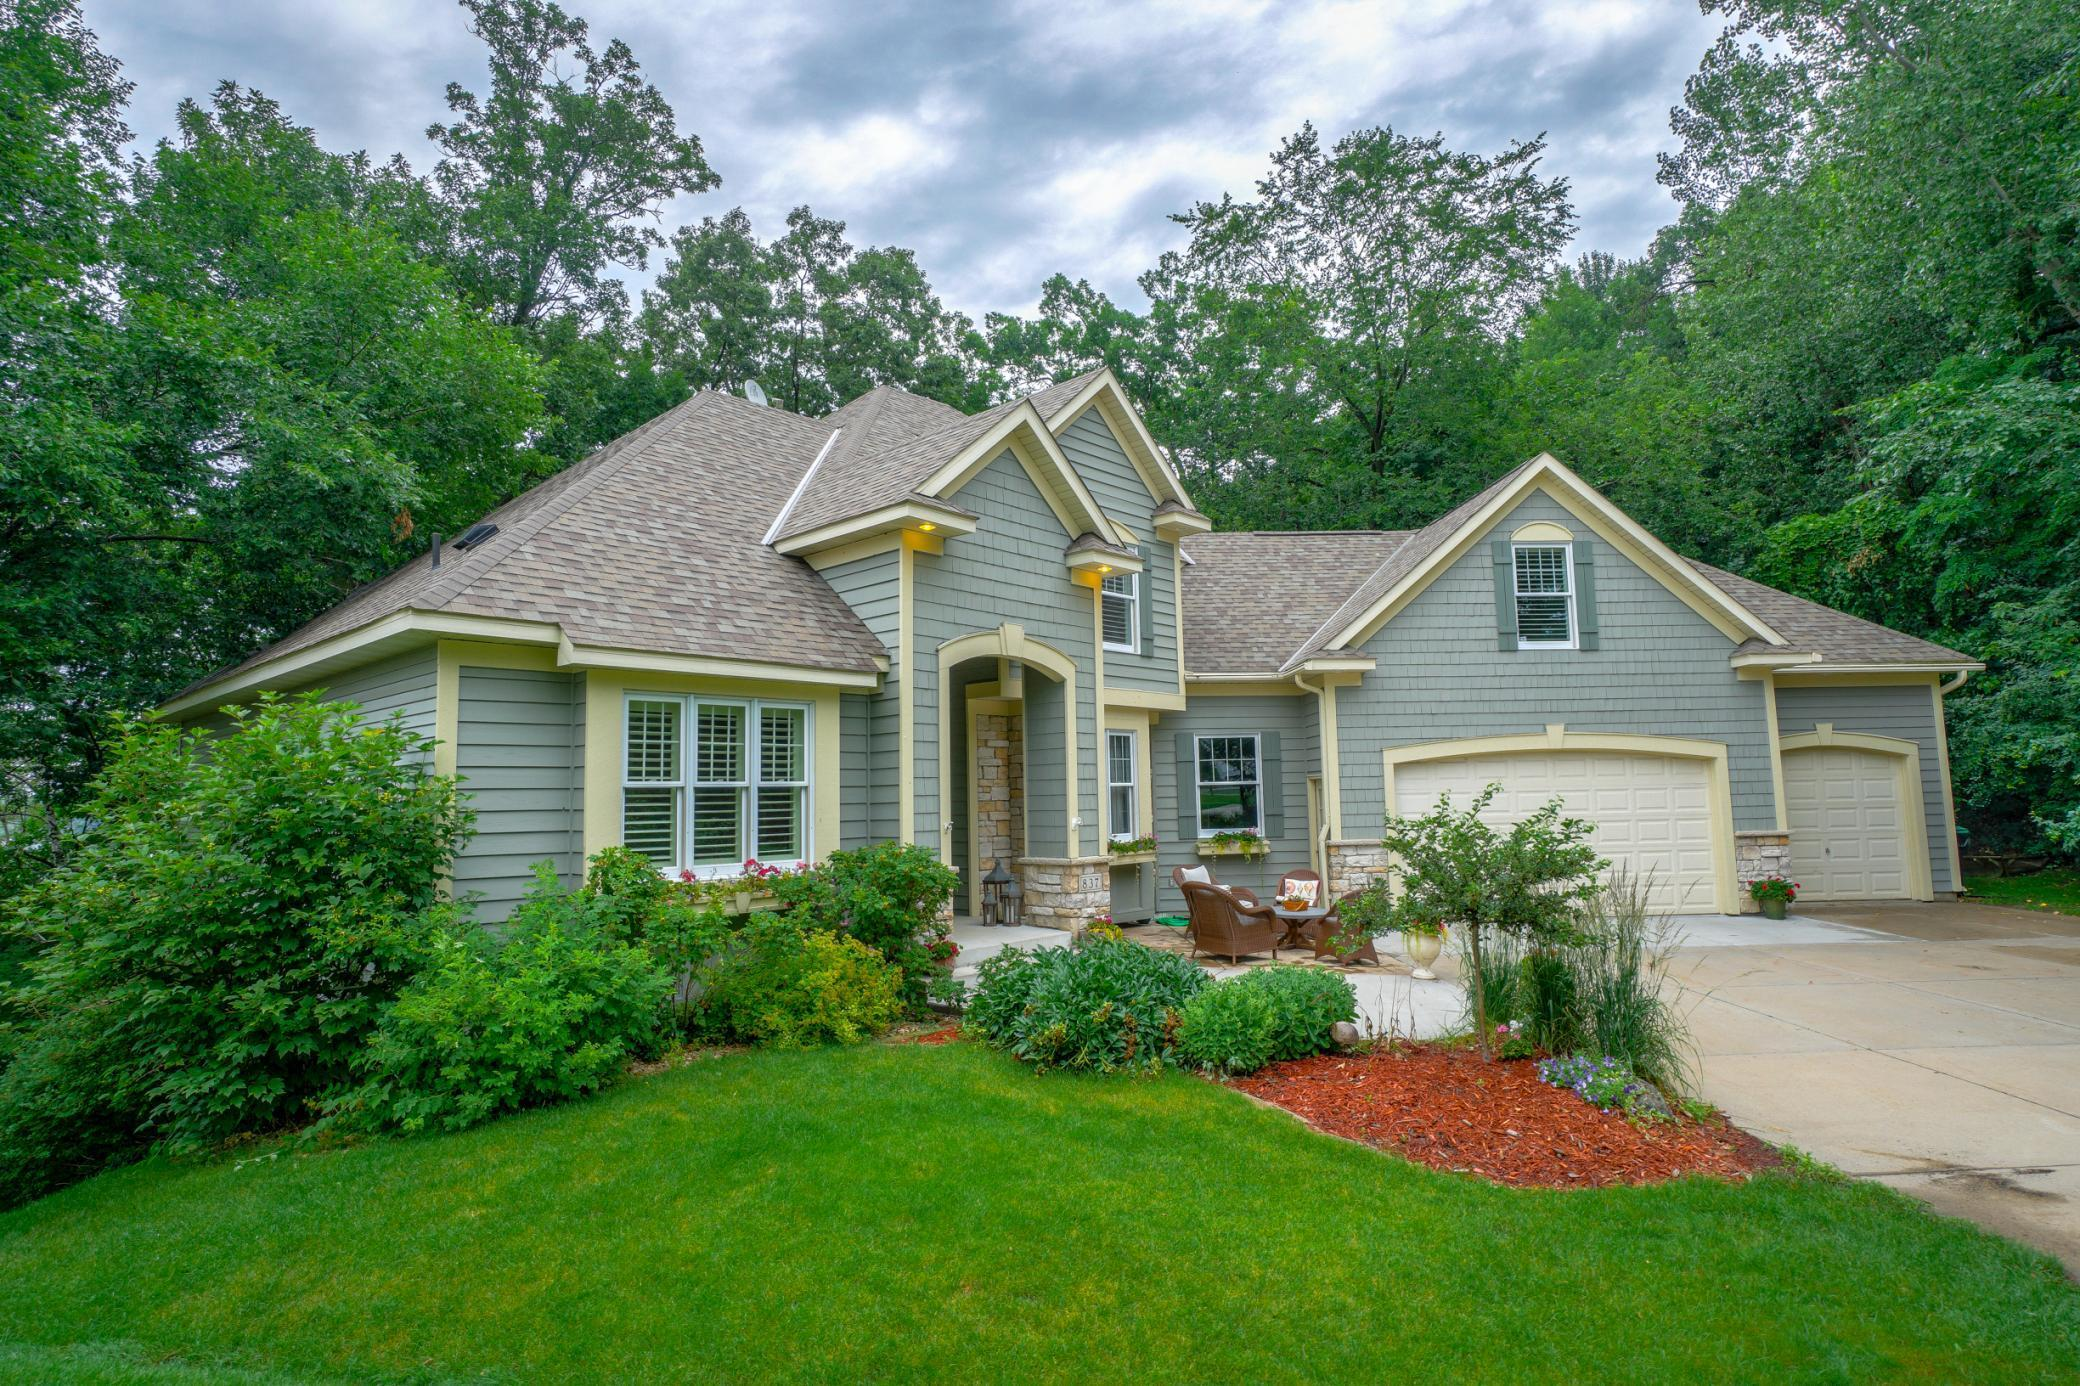 837 Amble Court Property Photo - Shoreview, MN real estate listing